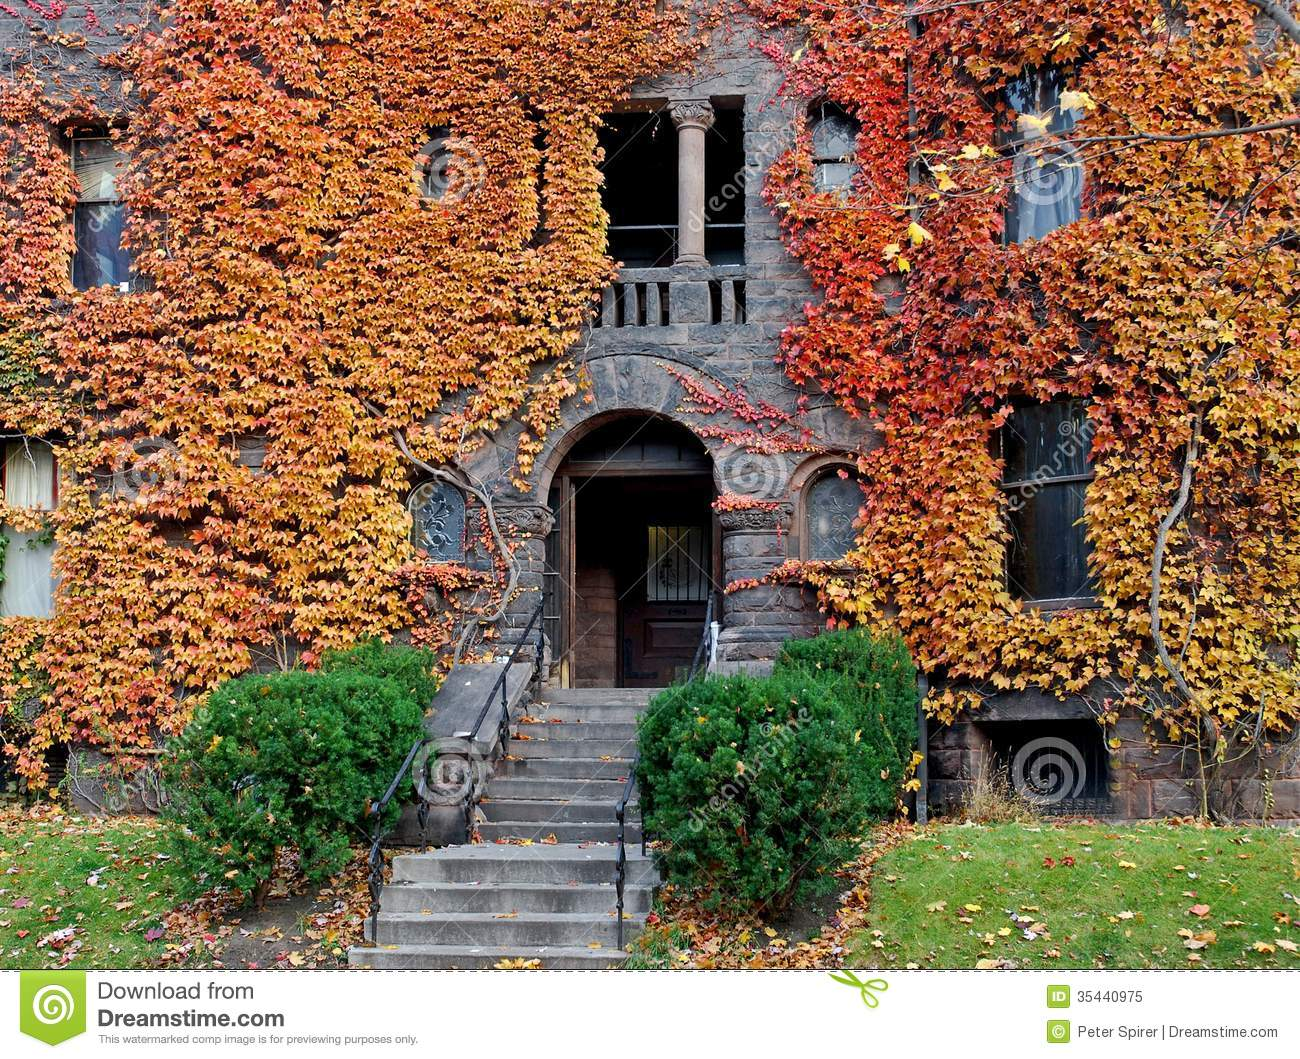 Leaves Fall Desktop Wallpaper College Building With Fall Ivy Royalty Free Stock Photo